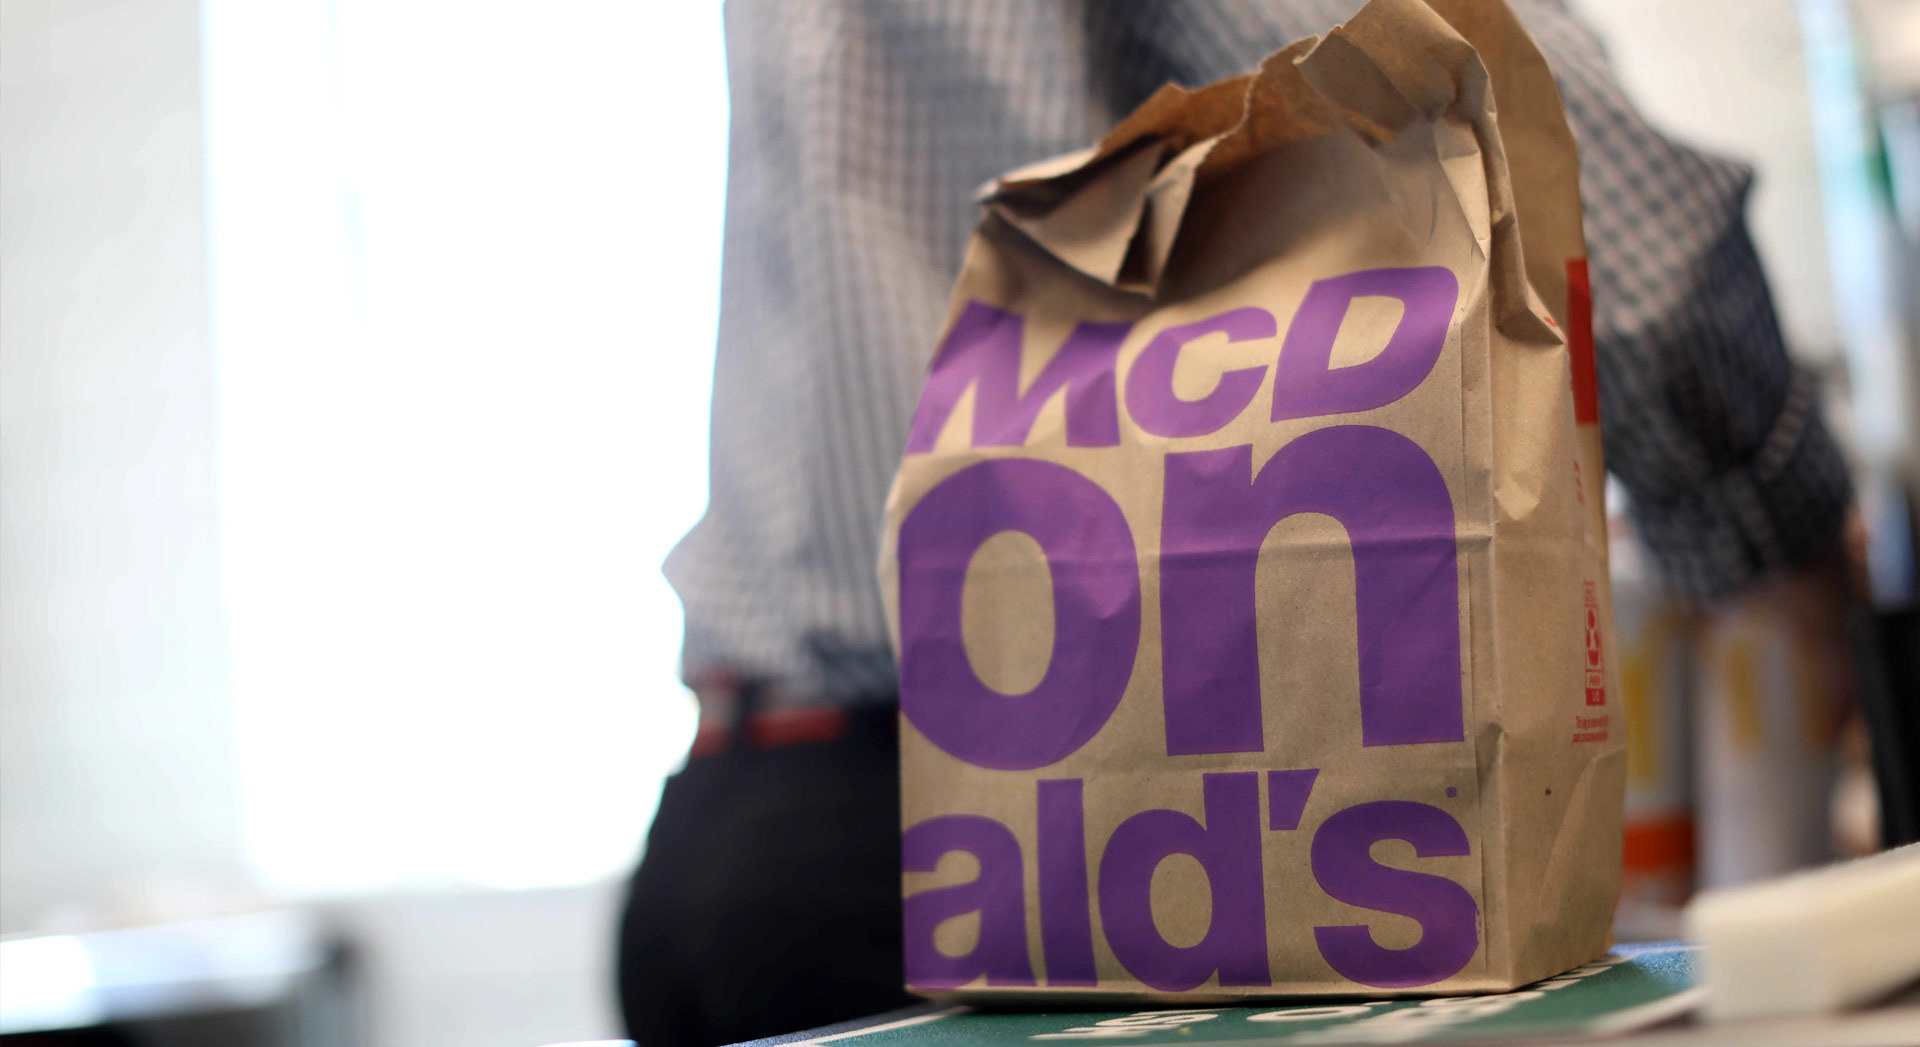 Know Our Food - Is McDonald's South Africa Halaal?